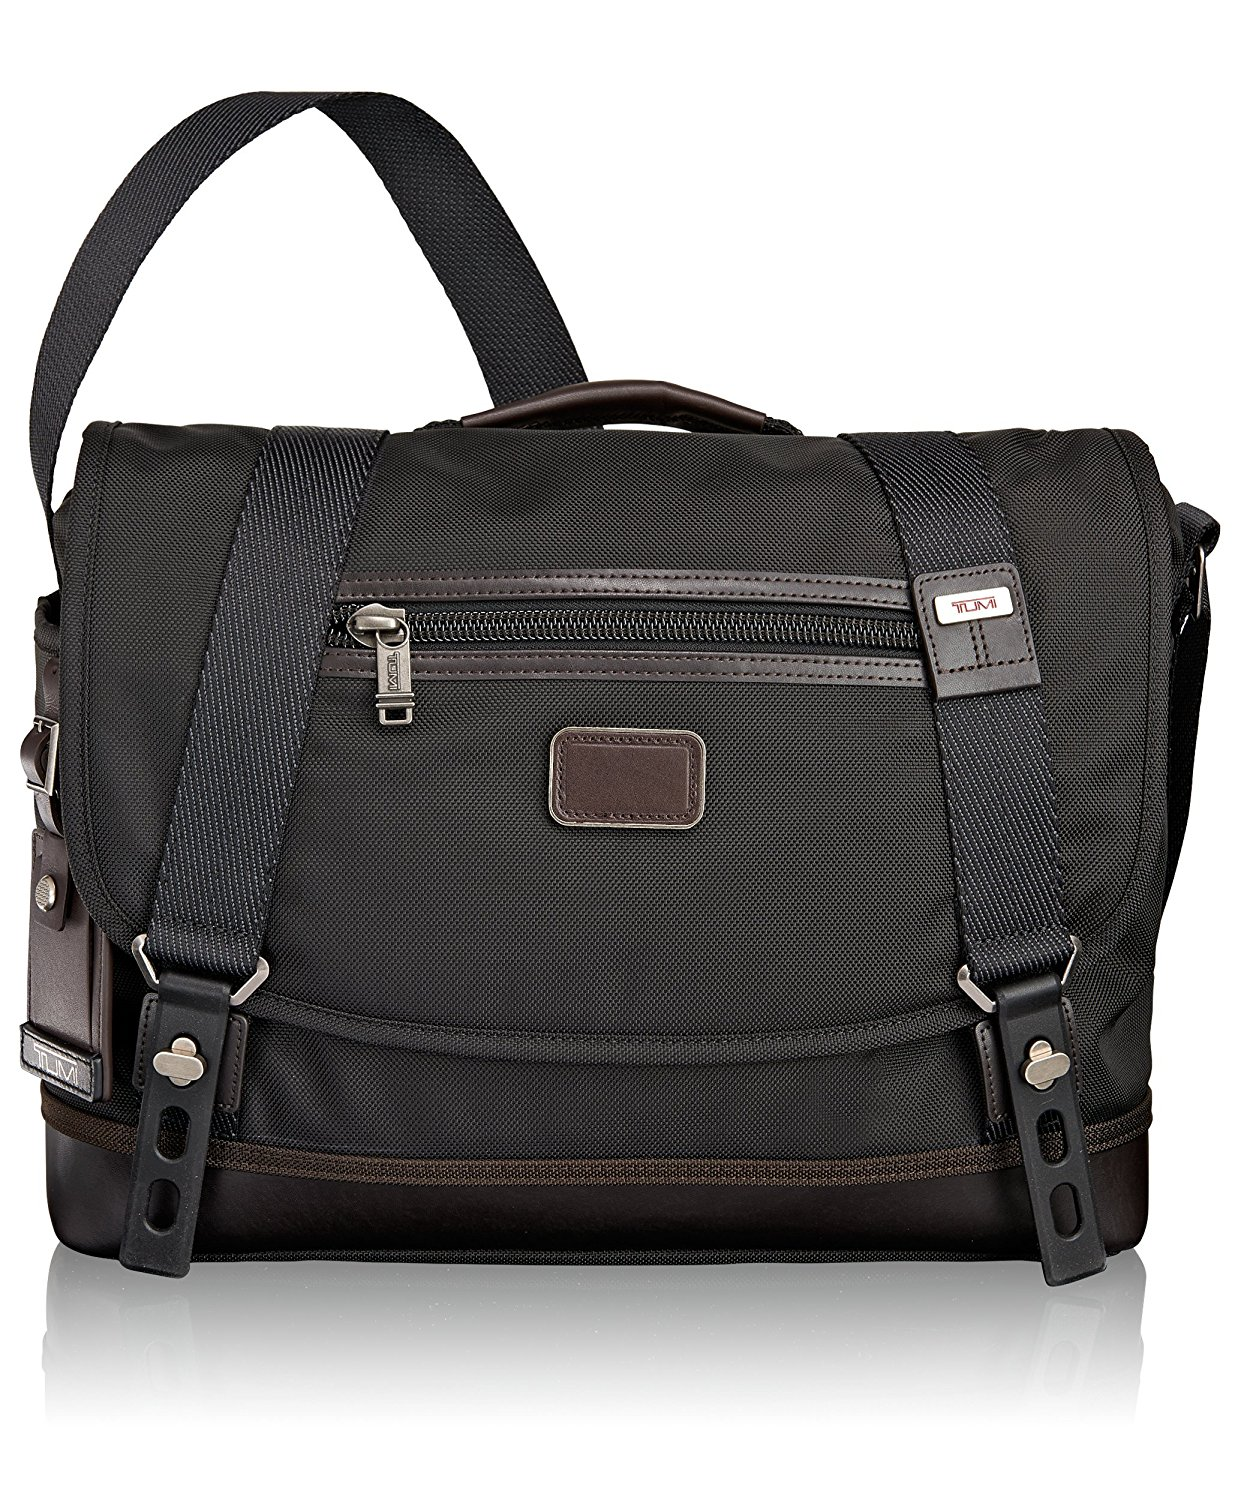 Tumi Alpha Bravo | Tumi Alpha Bravo Mcnair Slim Brief | Tumi Alpha Bravo Backpack